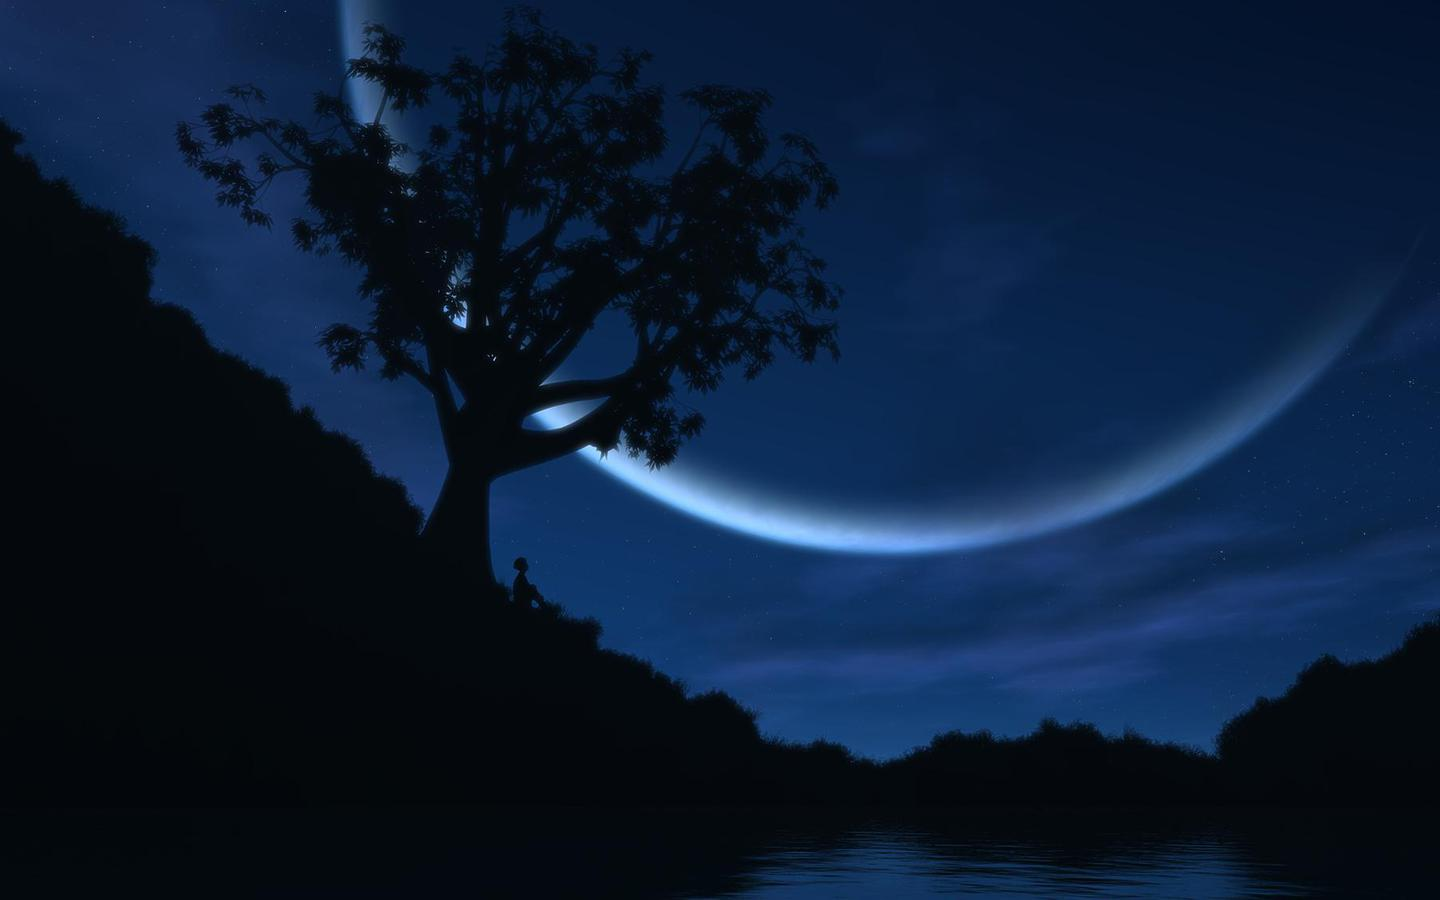 Beautiful Dark Night Sky Images amp Pictures   Becuo 1440x900